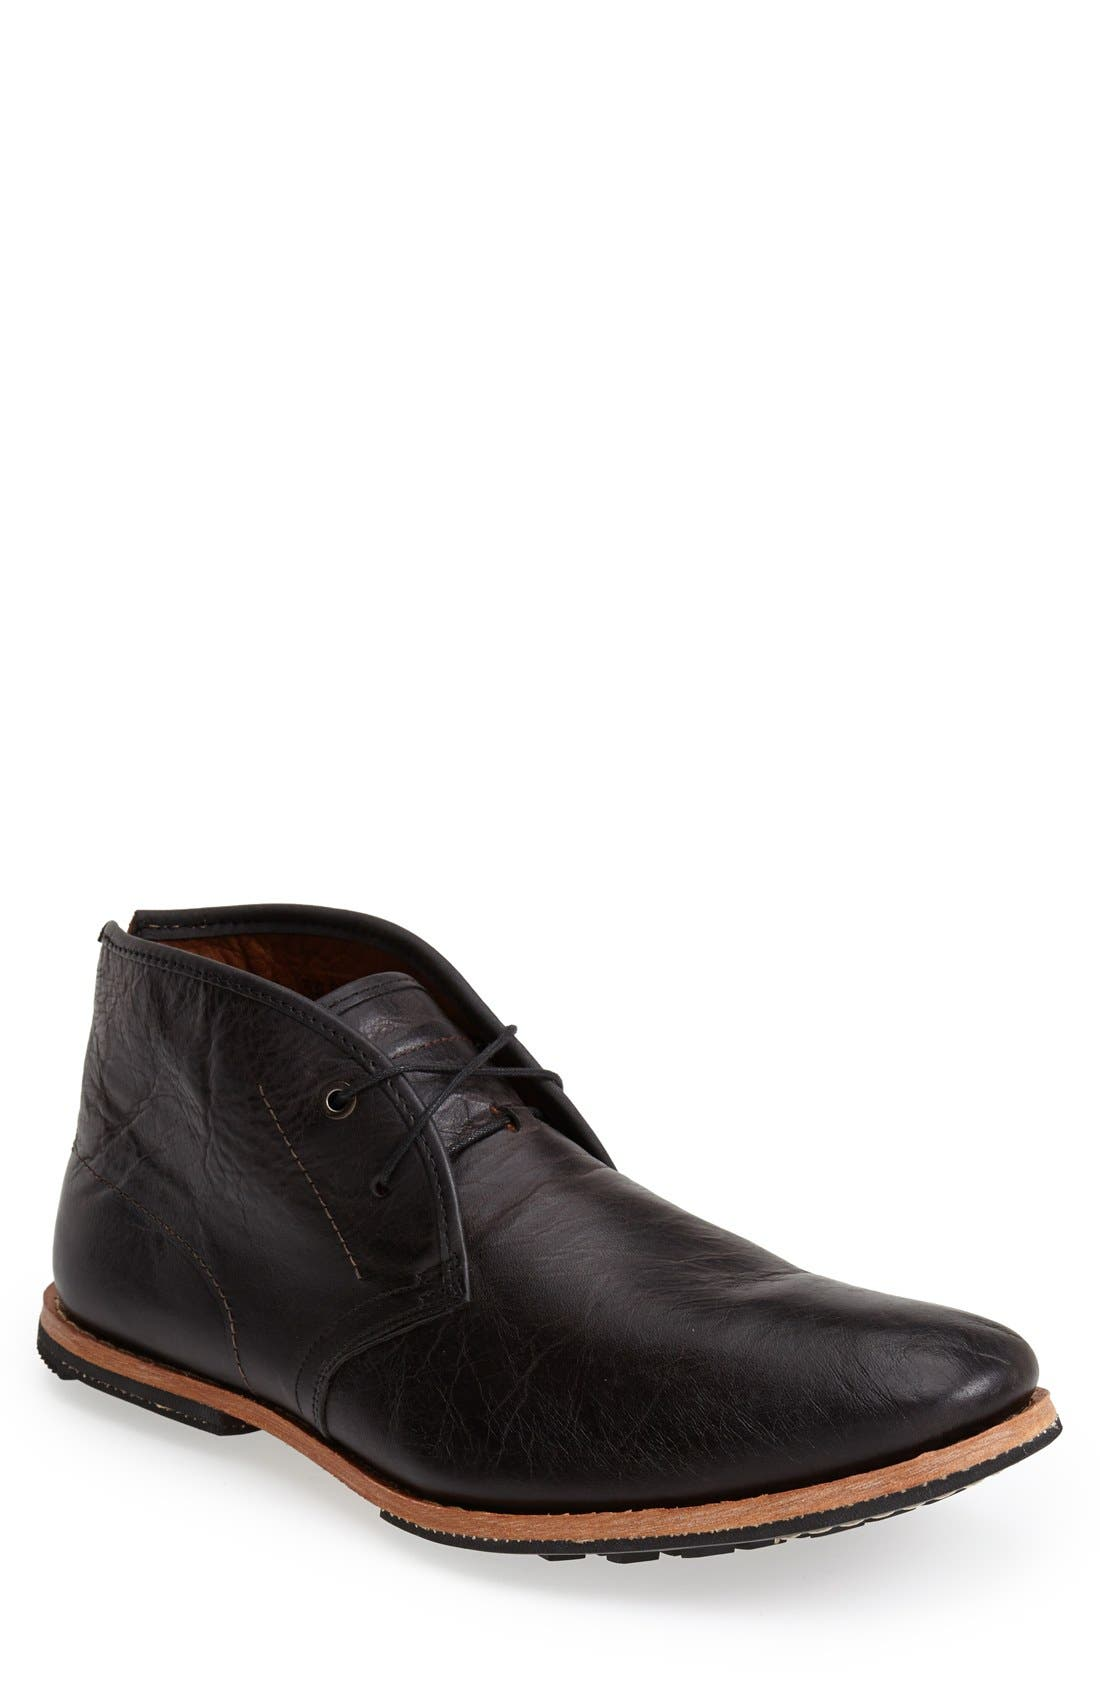 Wodehouse History Chukka Boot, Main, color, BLACK LEATHER